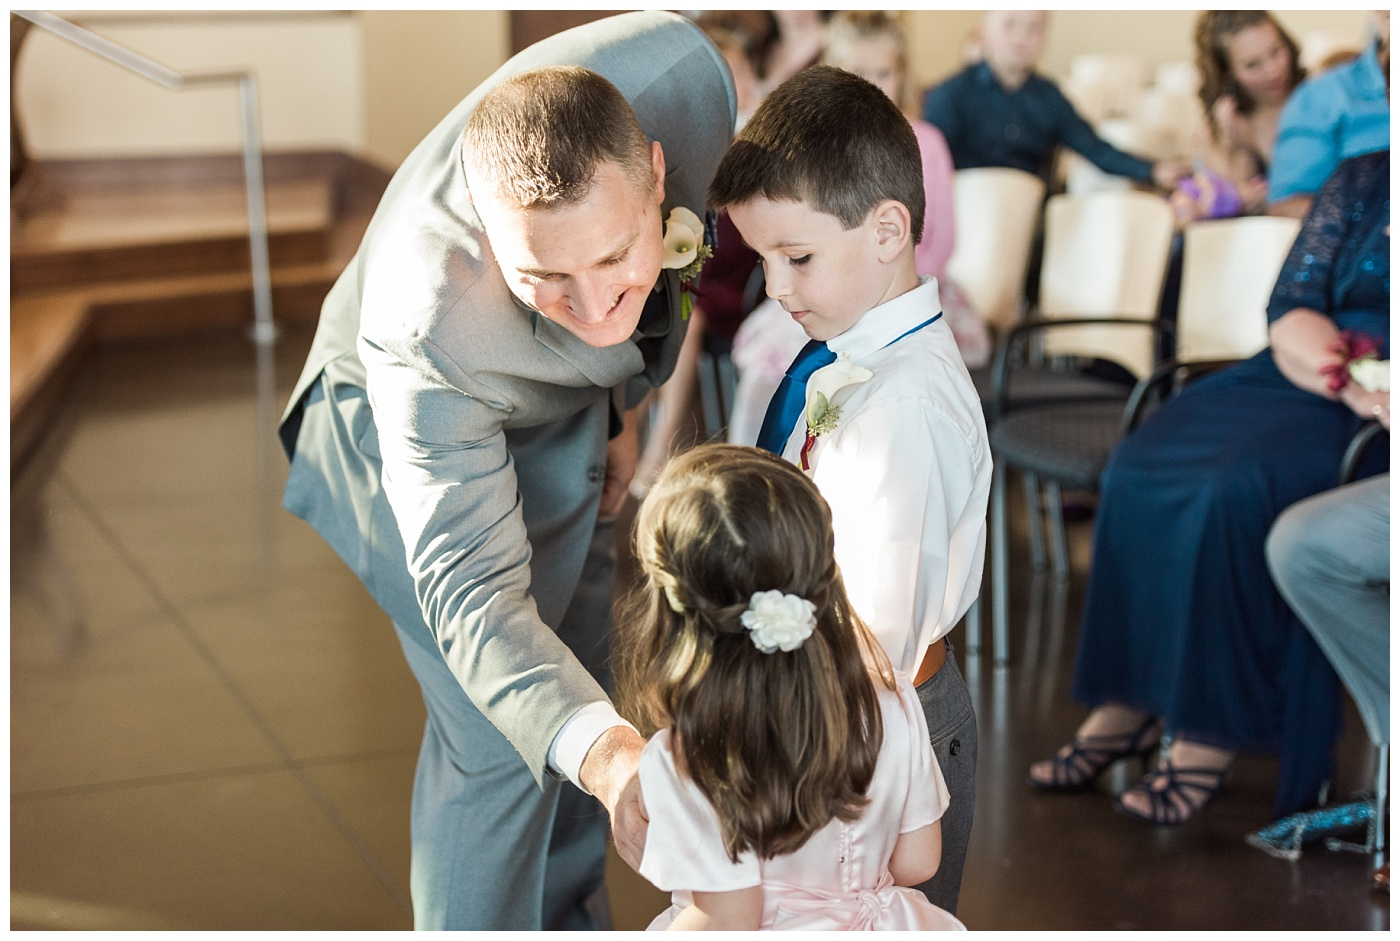 Stephanie Marie Photography St Mark's Lutheran Church Eastbank Venue and Lounge Reception Cedar Rapids Iowa City Wedding Photographer Jen Nick Morris_0023.jpg